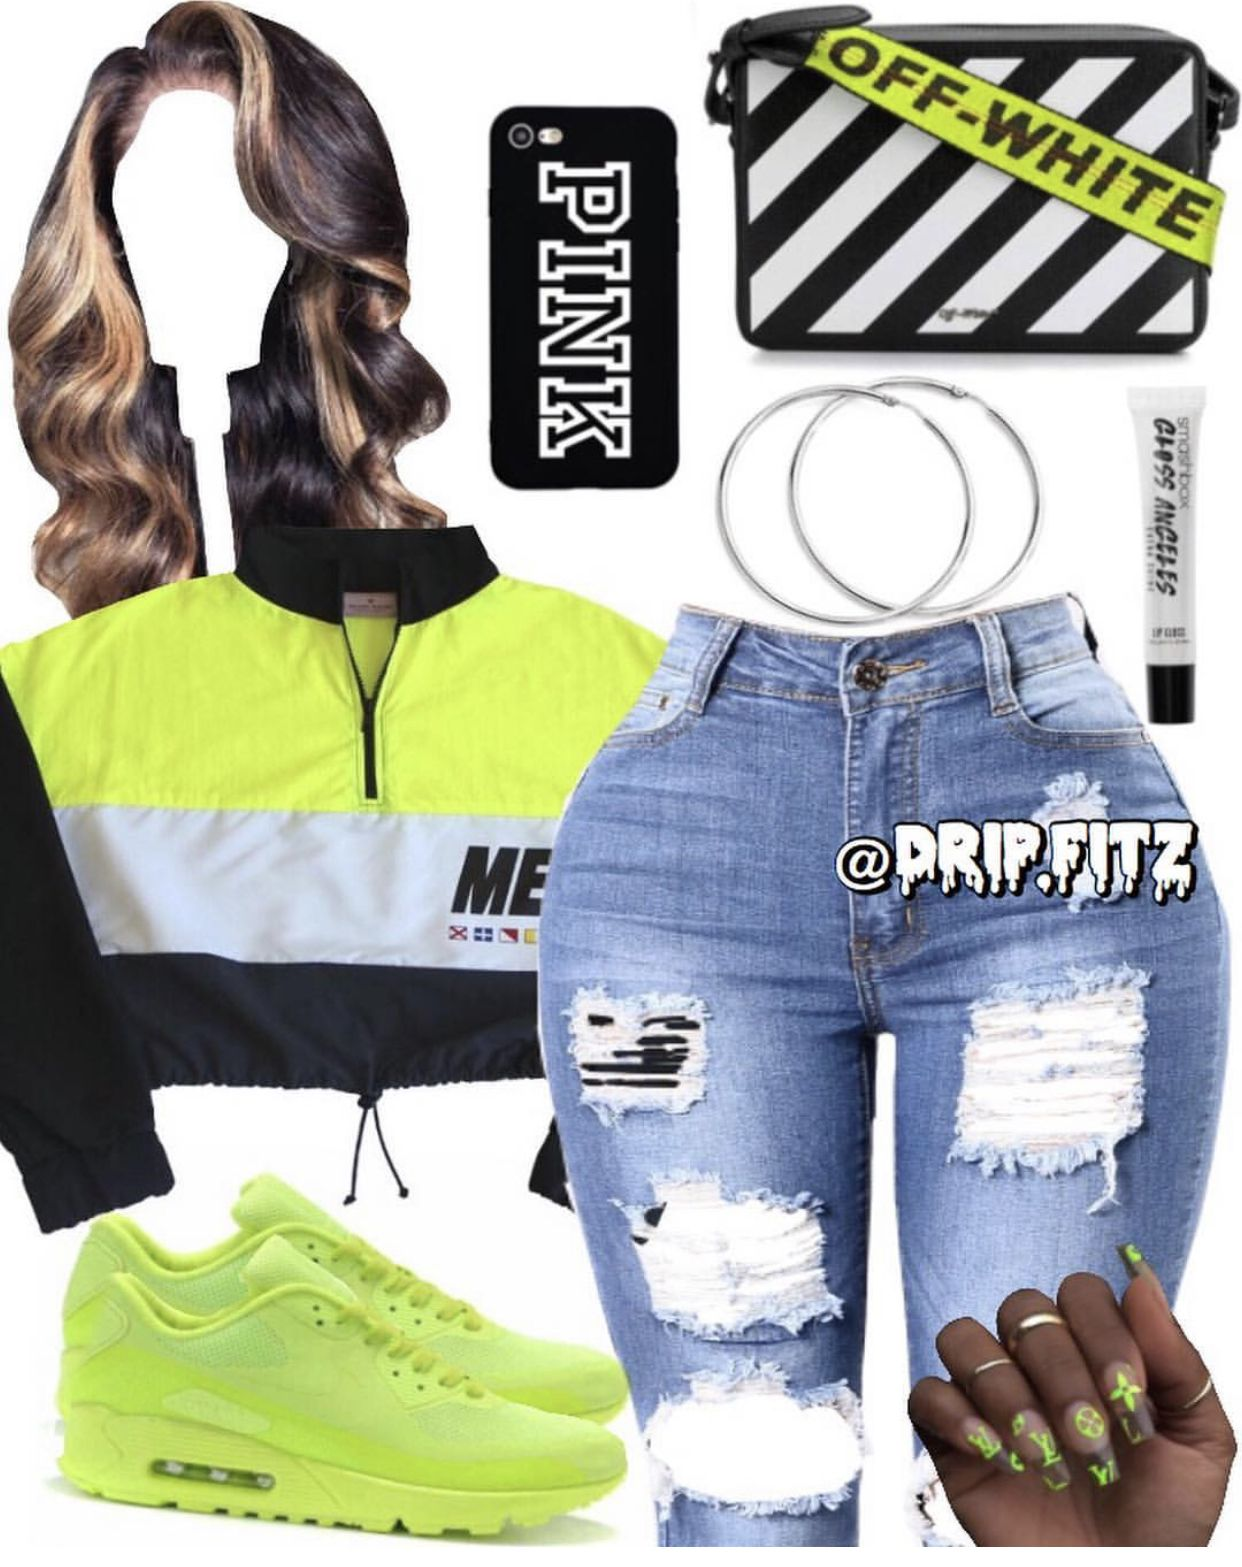 Follow @drip.fitz for more outfits inspo! 🥰